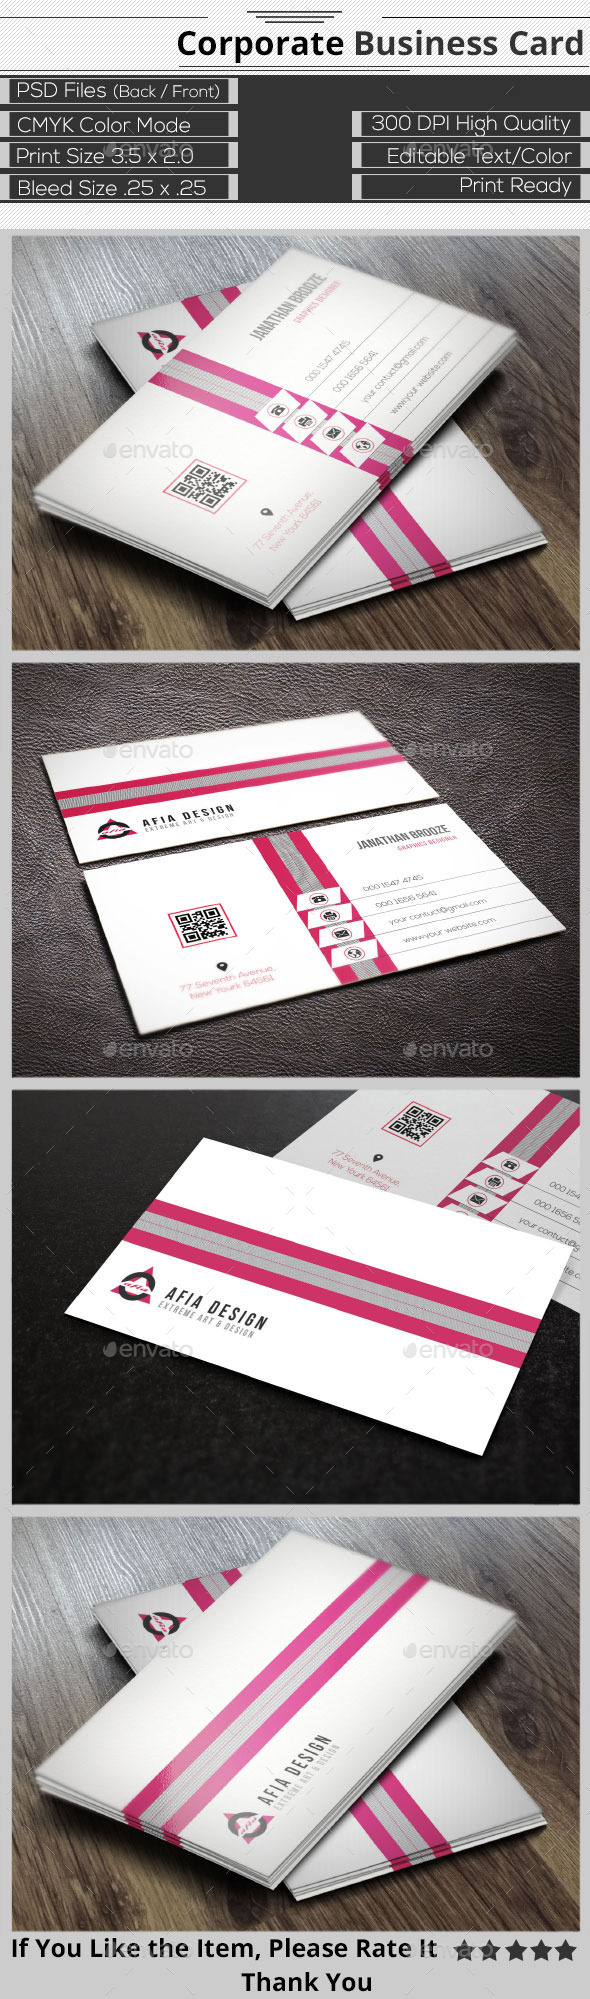 Clean Creative Corporate Business Card